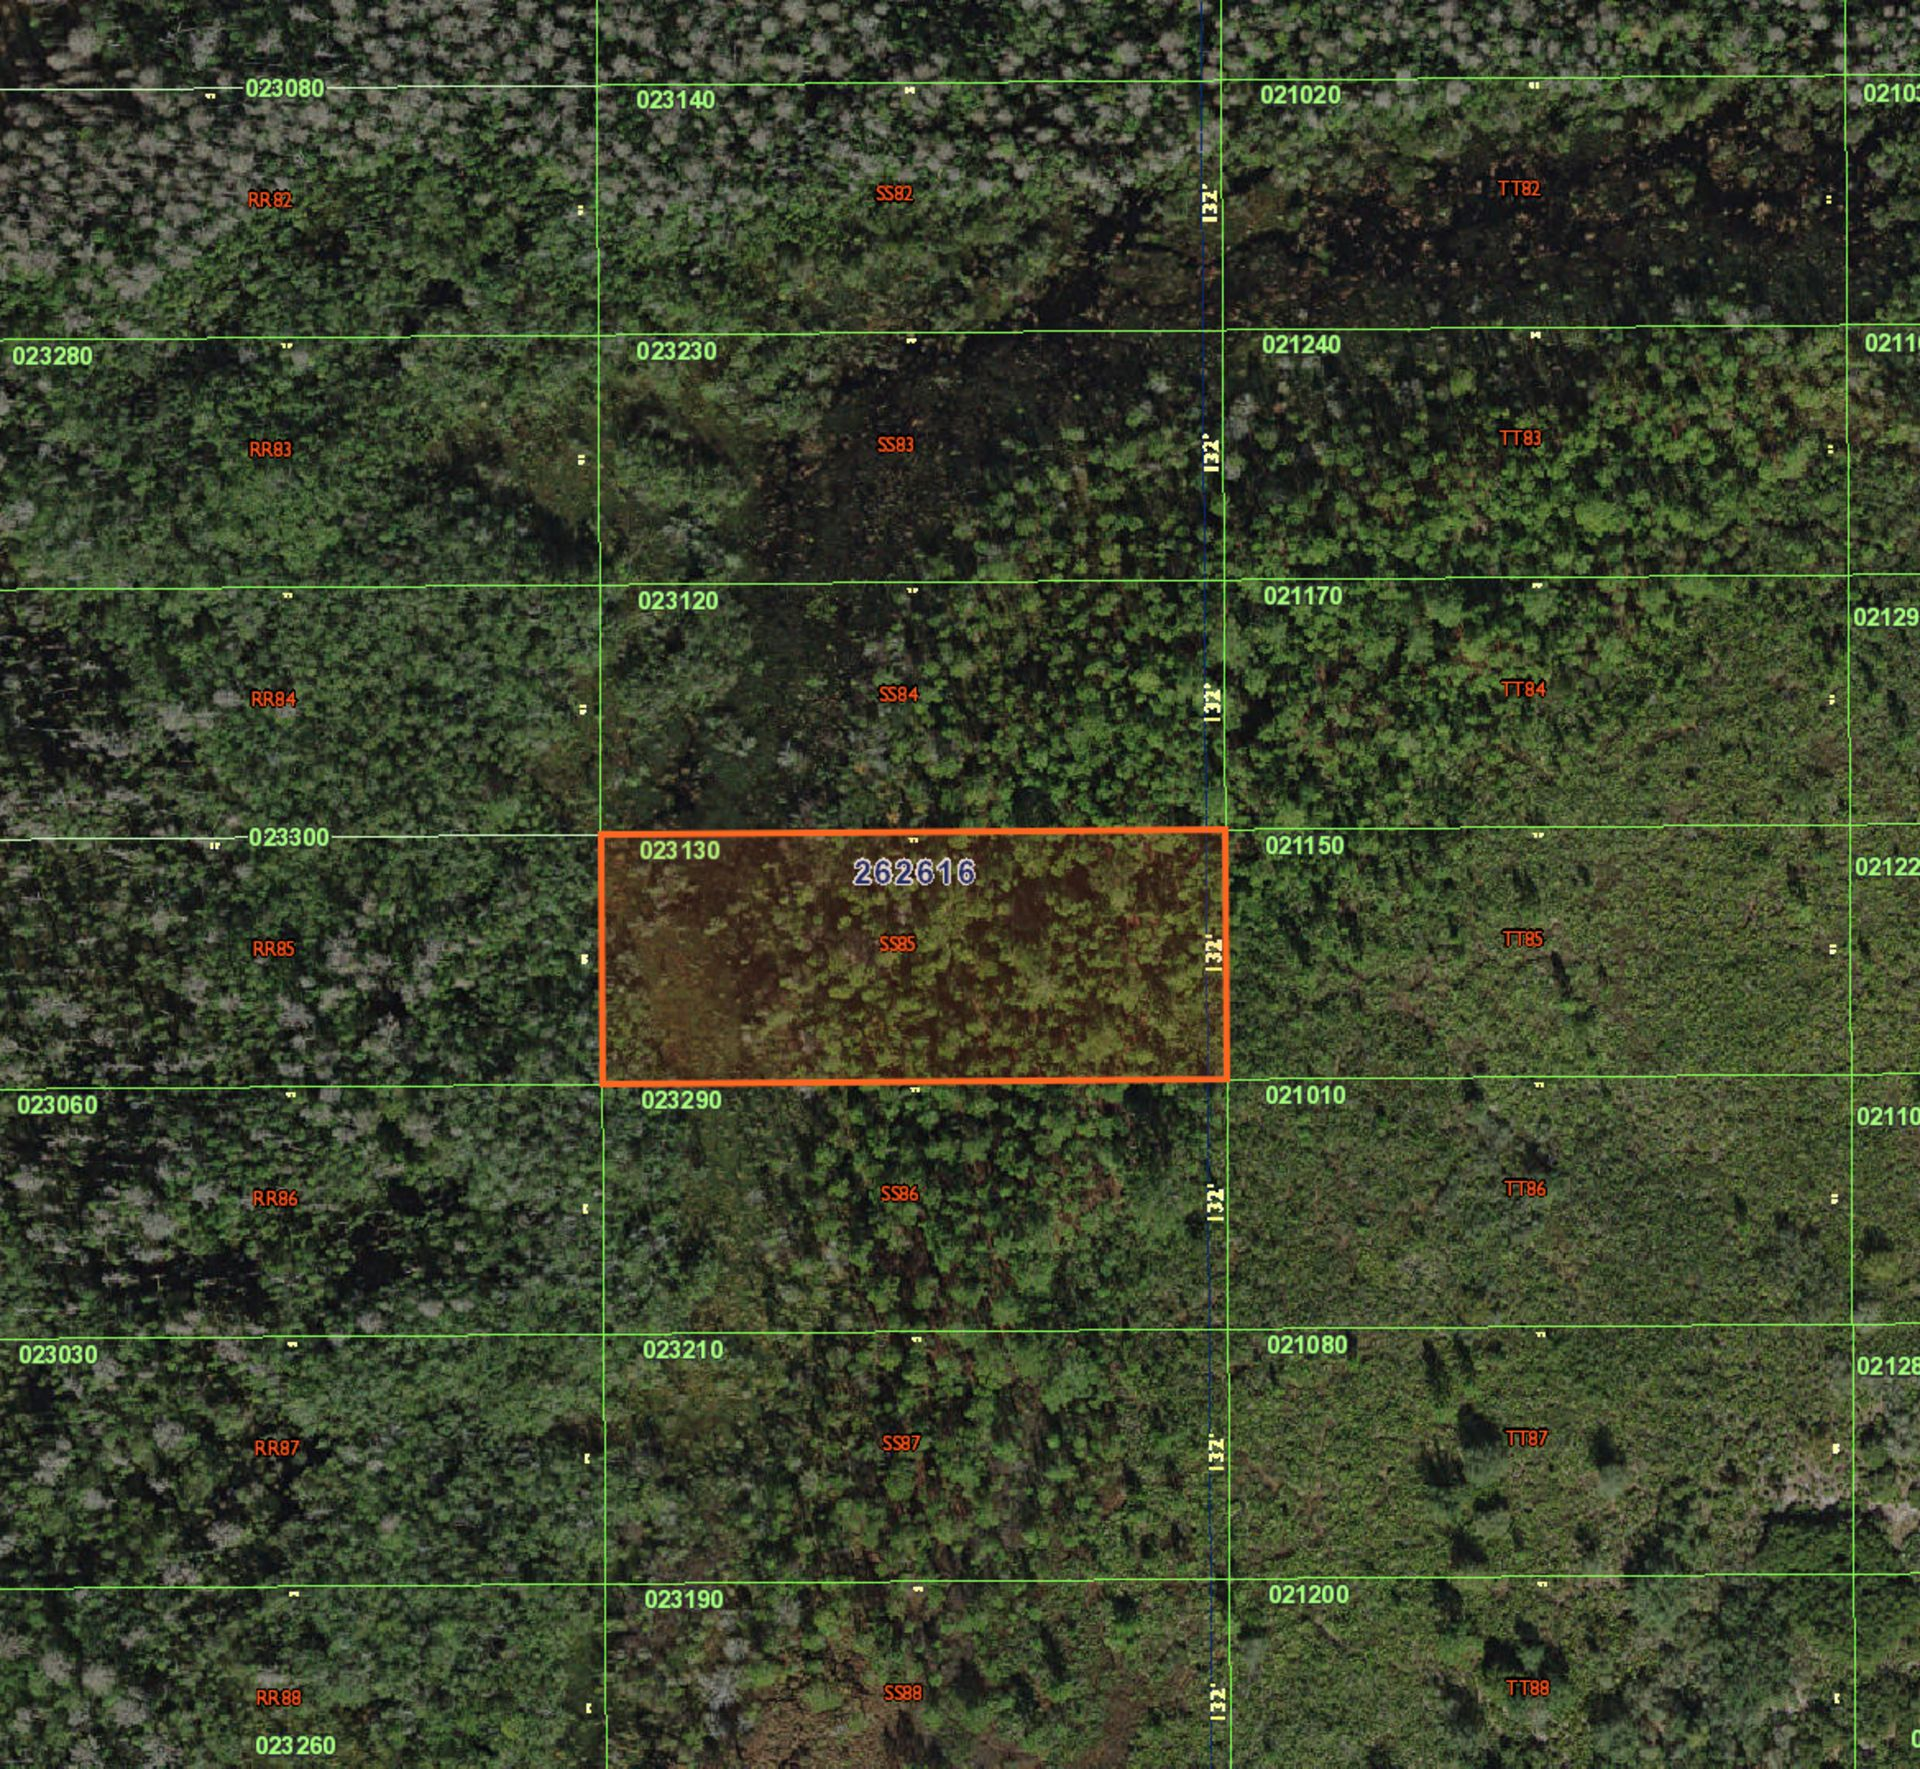 One Acre in Peaceful Polk County, Florida! - Image 3 of 4